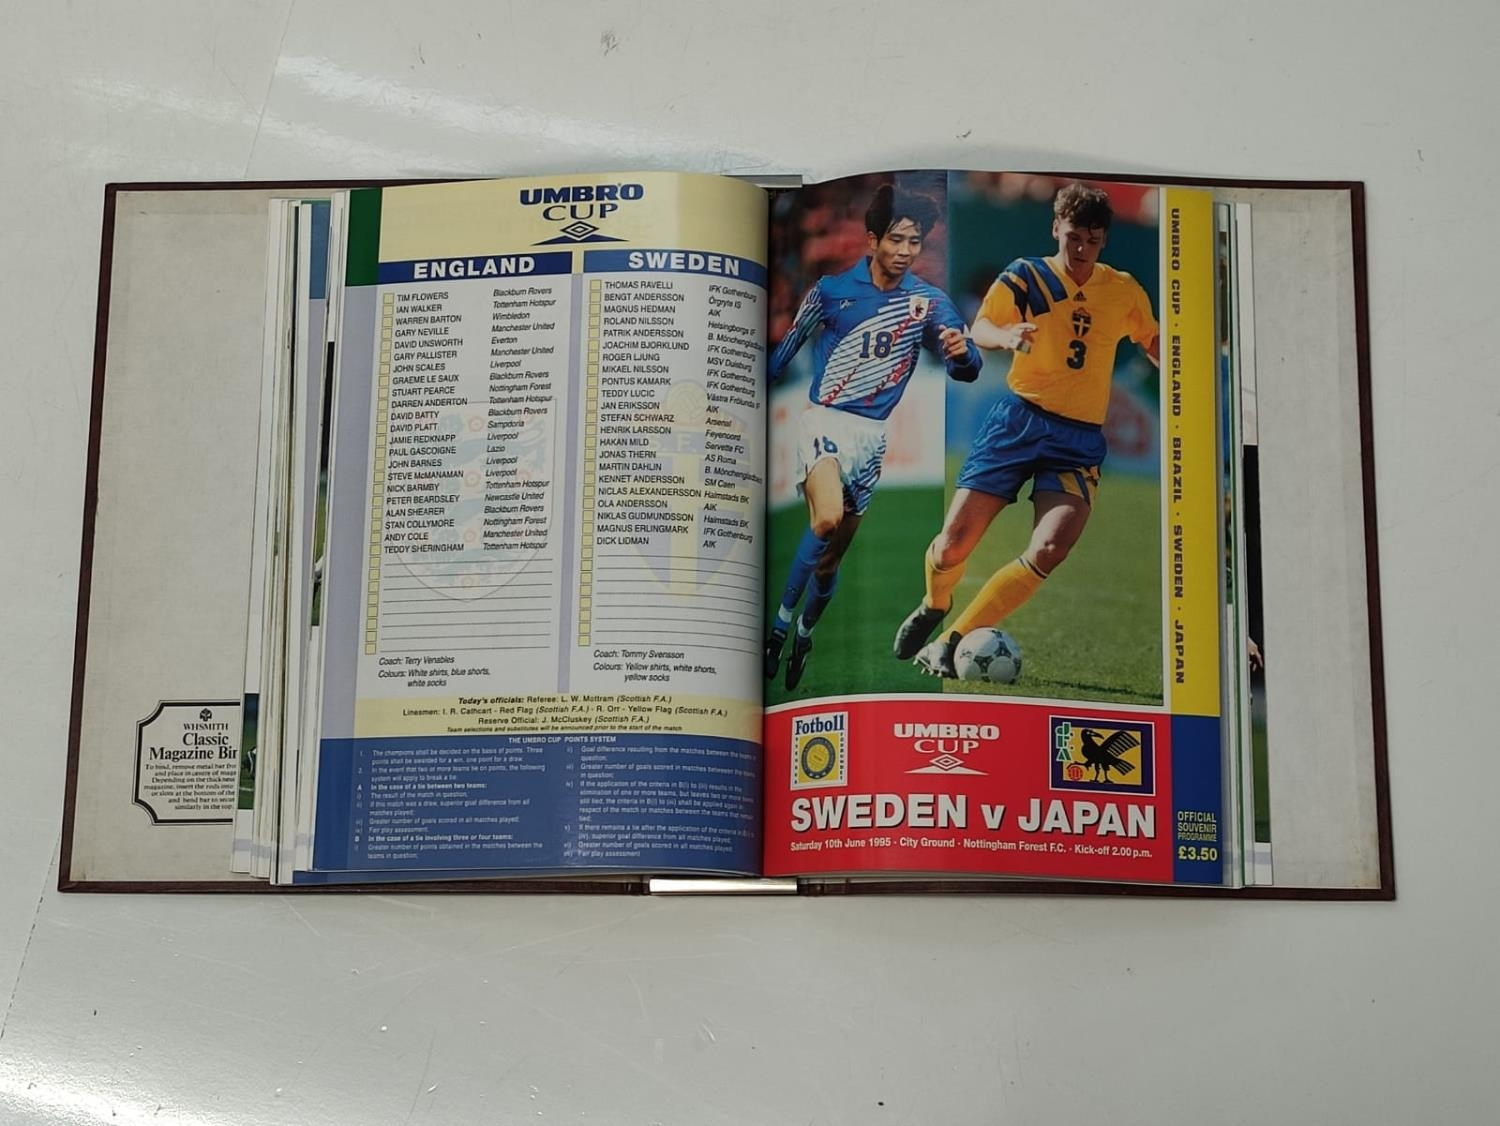 6 UMBRO Cup (1995) Match Programs. - Image 3 of 4